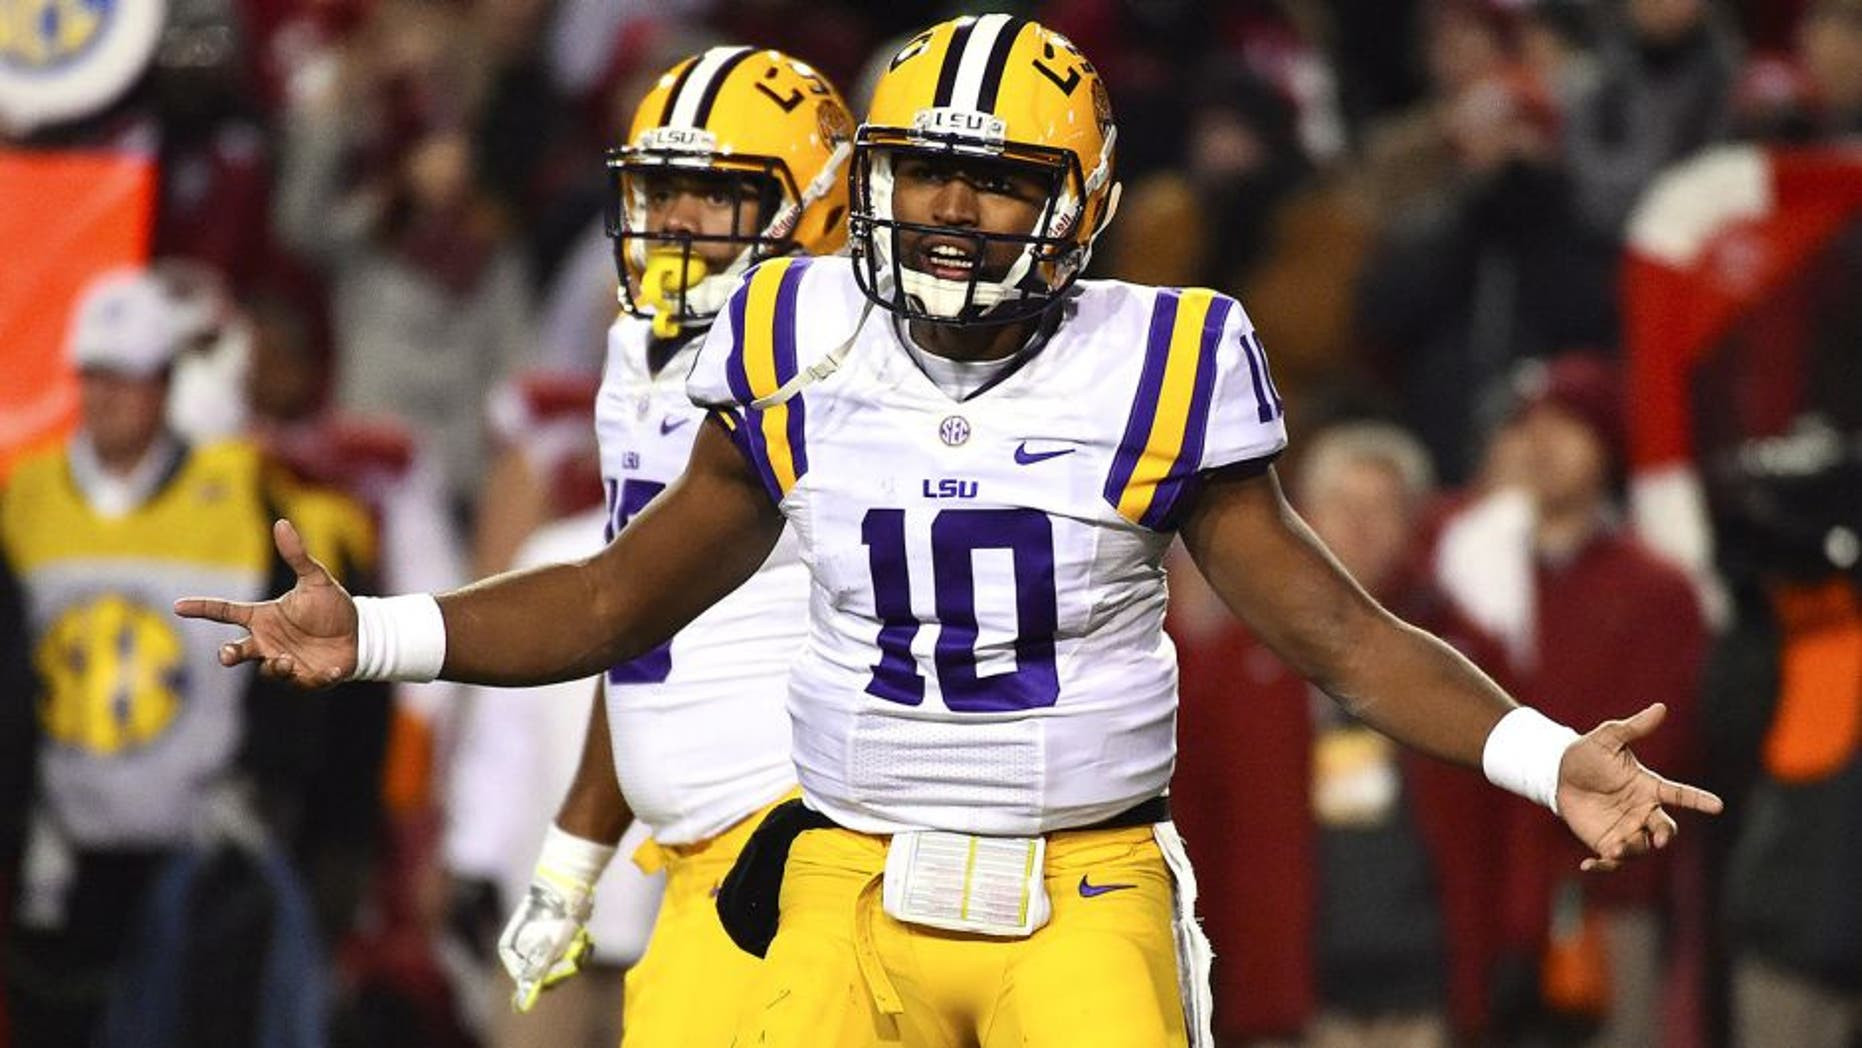 Nov 15, 2014; Fayetteville, AR, USA; LSU Tigers quarterback Anthony Jennings (10) signals to the sidelines in the game between the Arkansas Razorbacks and the LSU Tigers during the first half at Donald W. Reynolds Razorback Stadium. Mandatory Credit: Jasen Vinlove-USA TODAY Sports